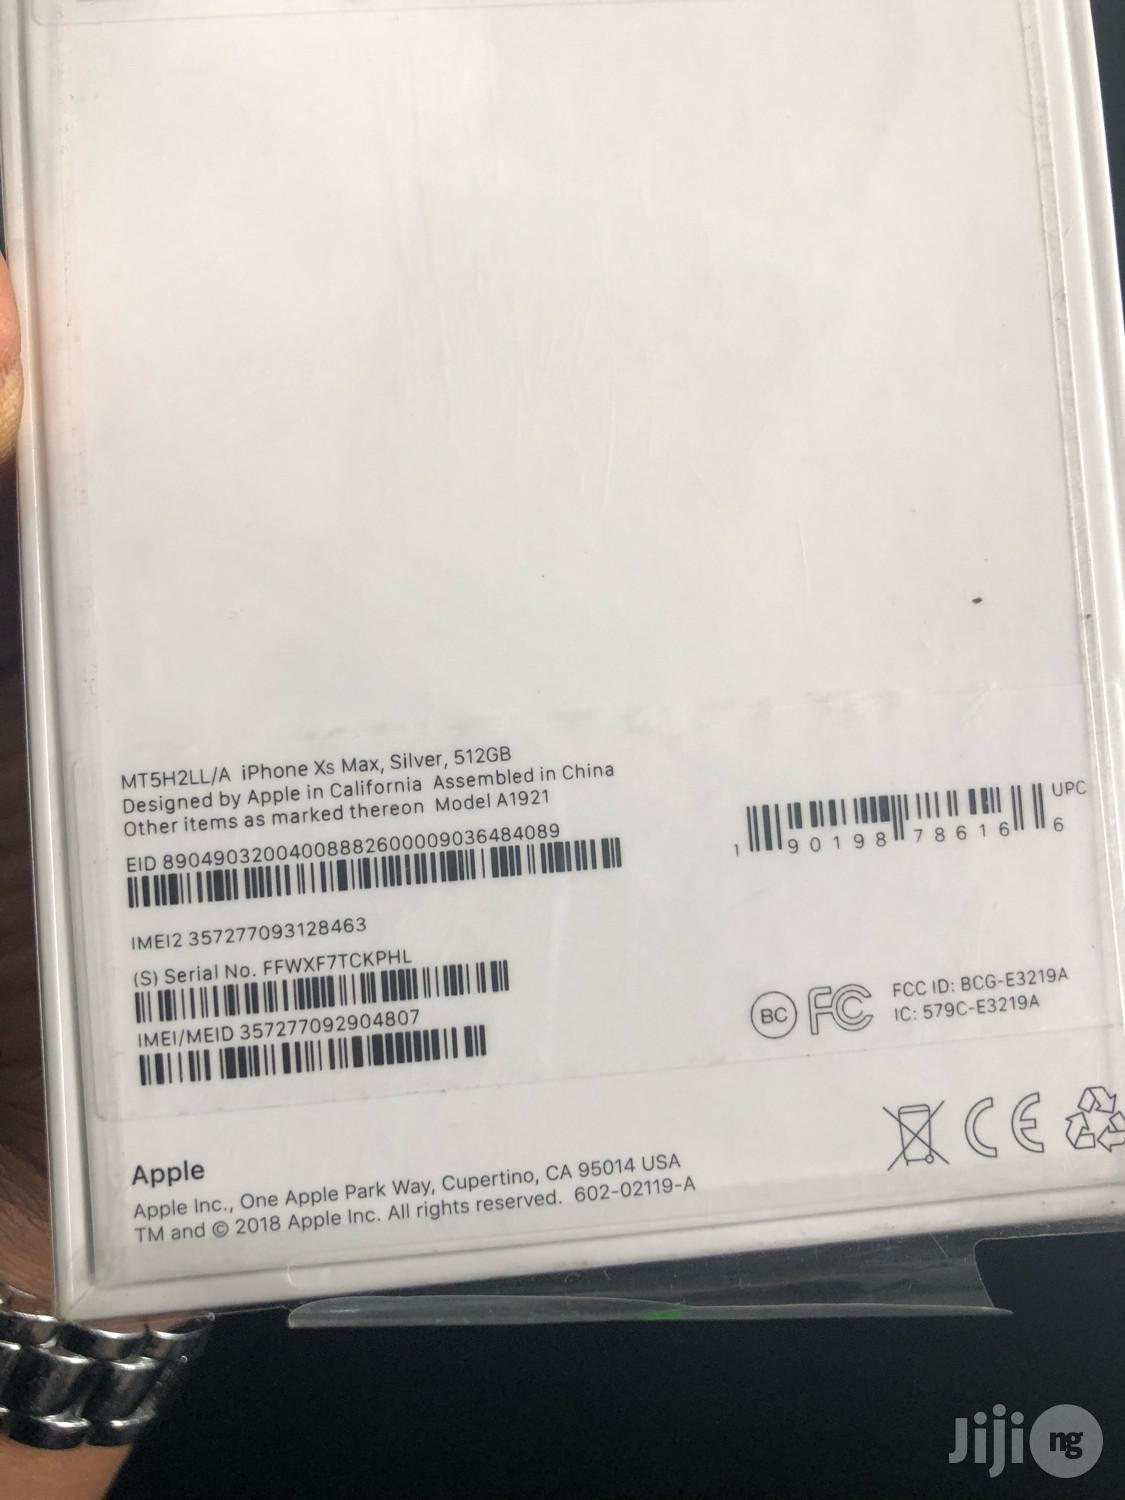 New Apple iPhone XS Max 512 GB | Mobile Phones for sale in Ikeja, Lagos State, Nigeria